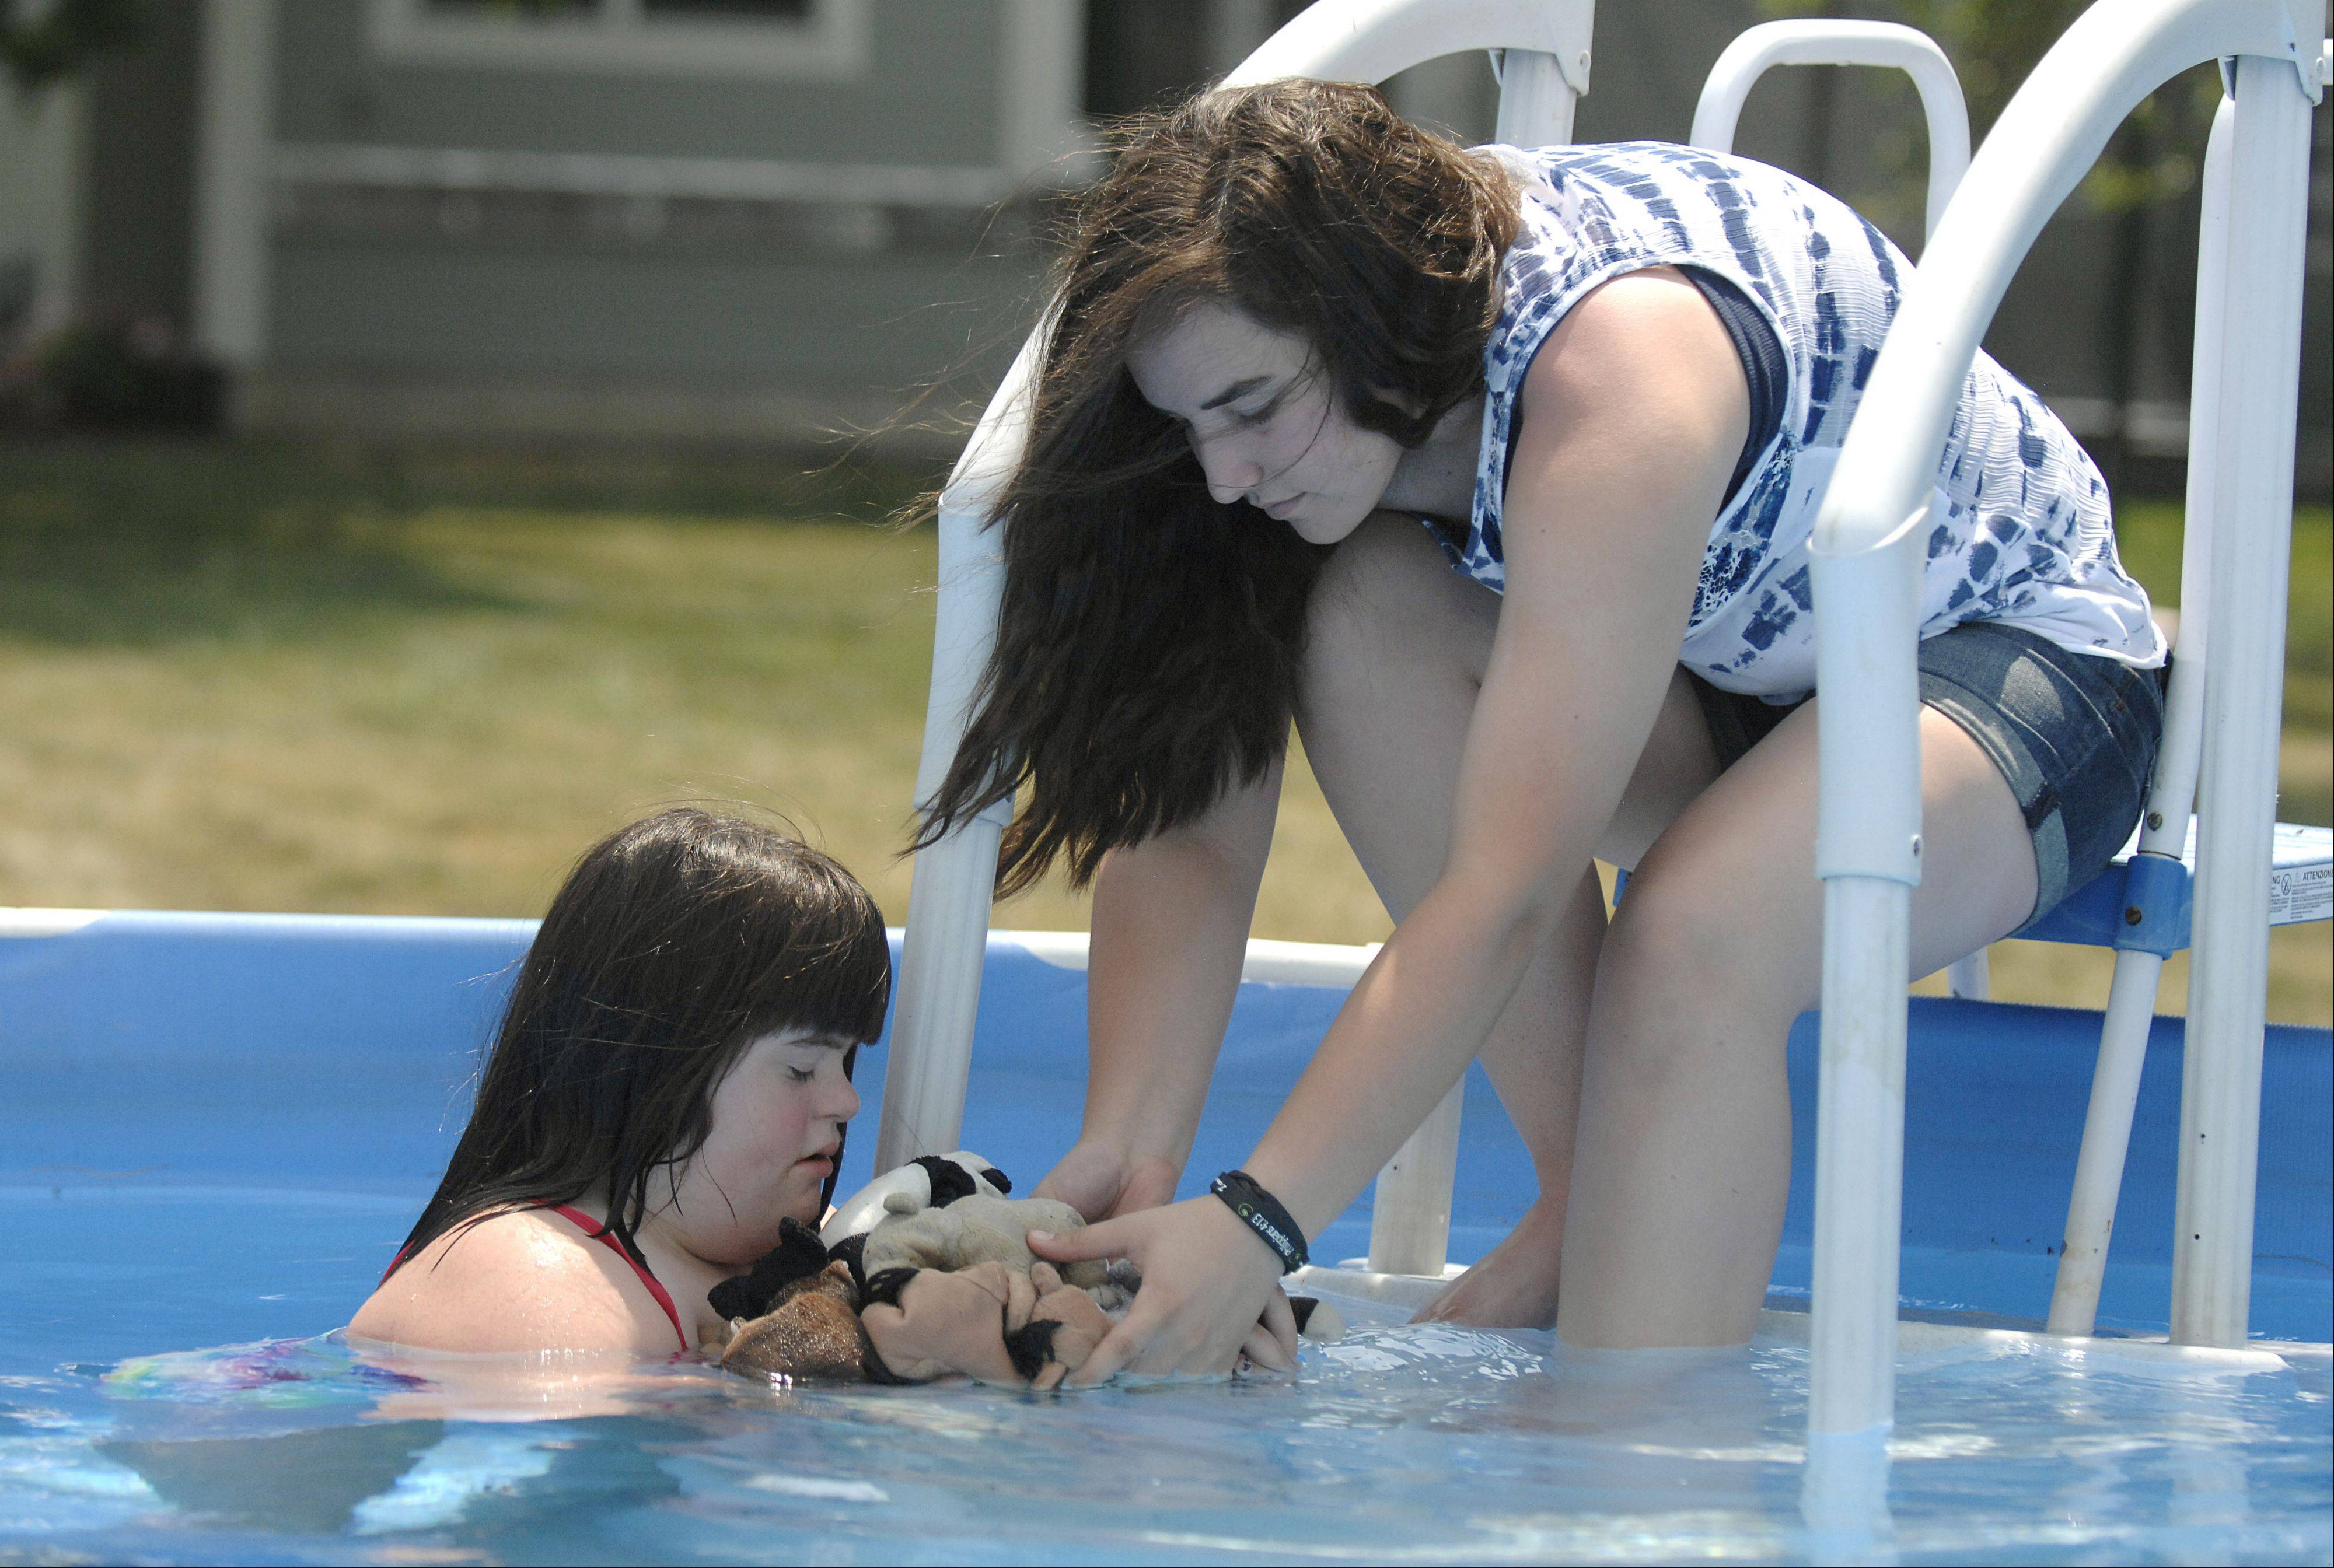 Kara Peters, 13, is handed her stuffed animals by sister, Marisa, 15, while spending time Thursday in their pool. Kara will be receiving a multipurpose service dog next spring with the help of the Elburn Lions and Leo clubs.